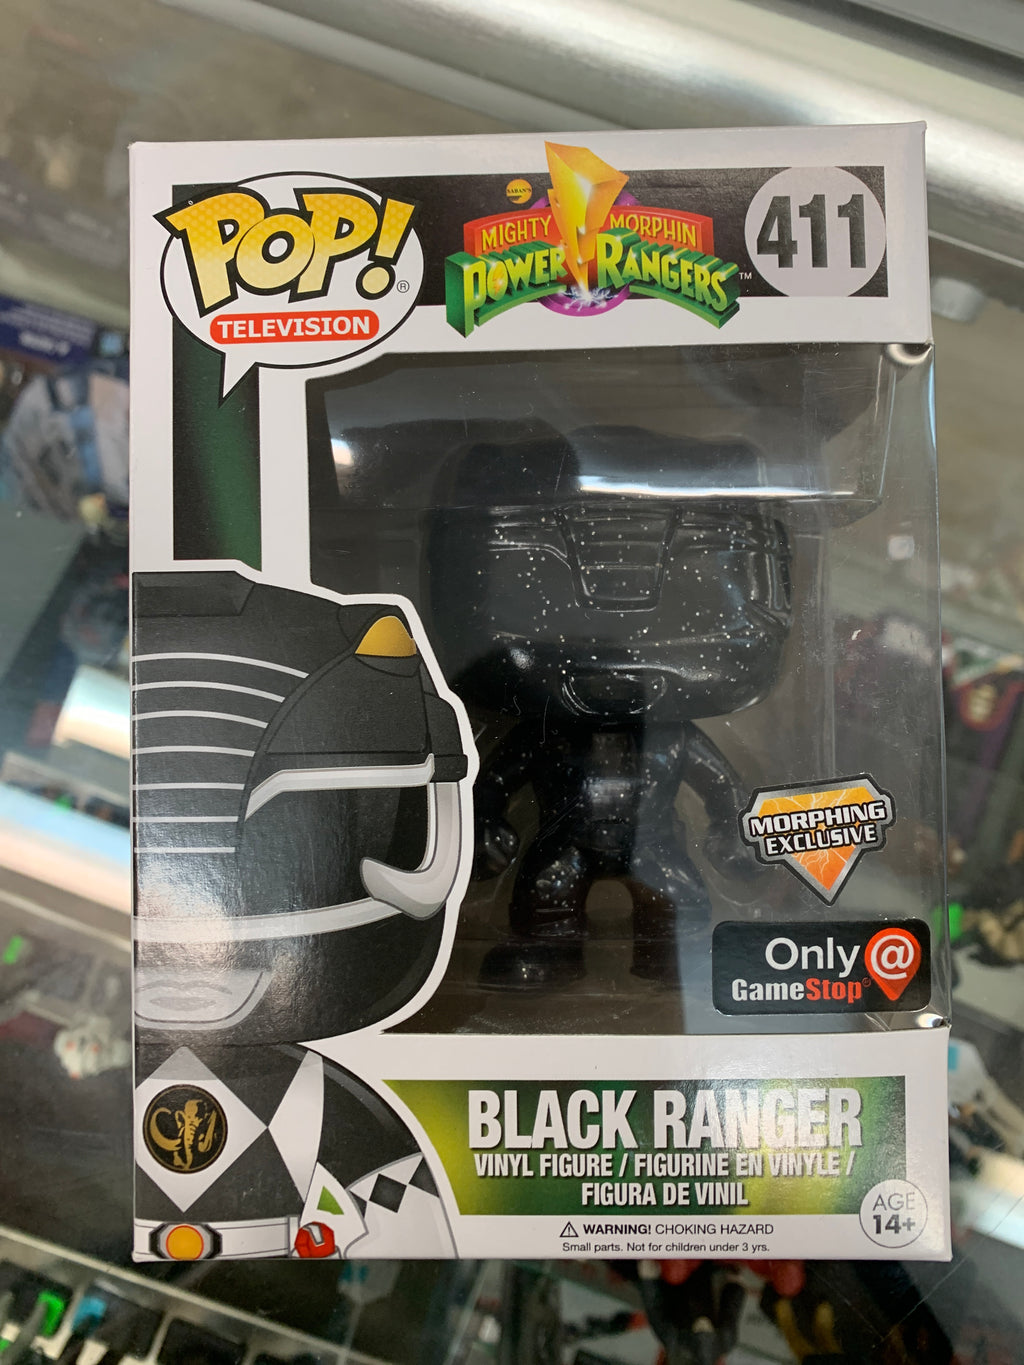 Funko POP! Television Mighty Morphin Power Rangers Black Ranger #411 GameStop Morphing Exclusive